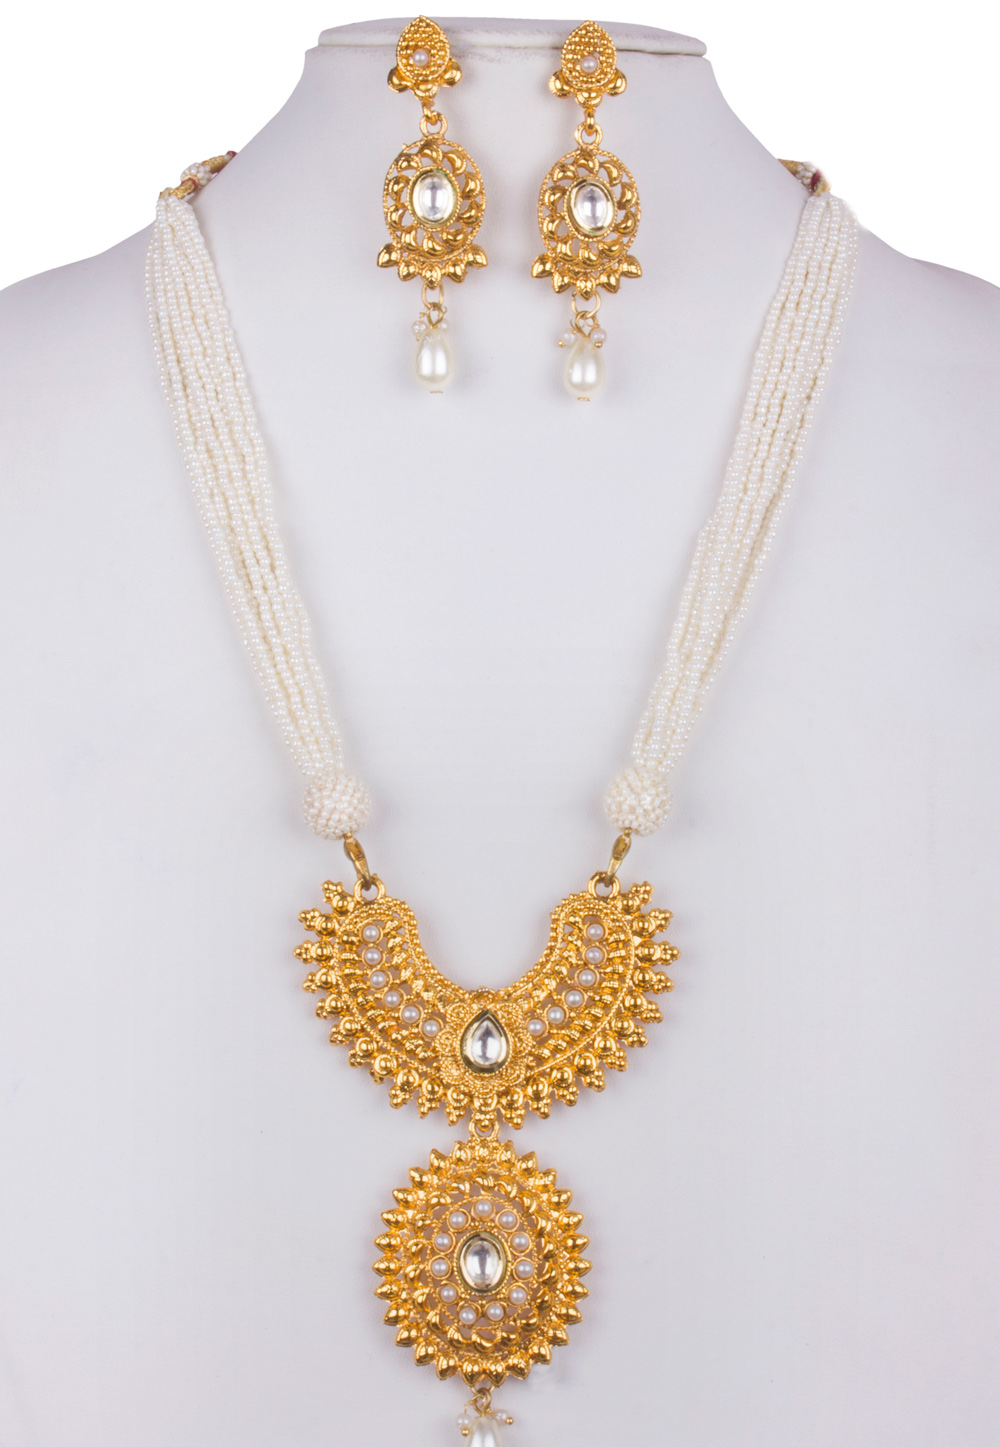 White Alloy Necklace With Earrings 157128